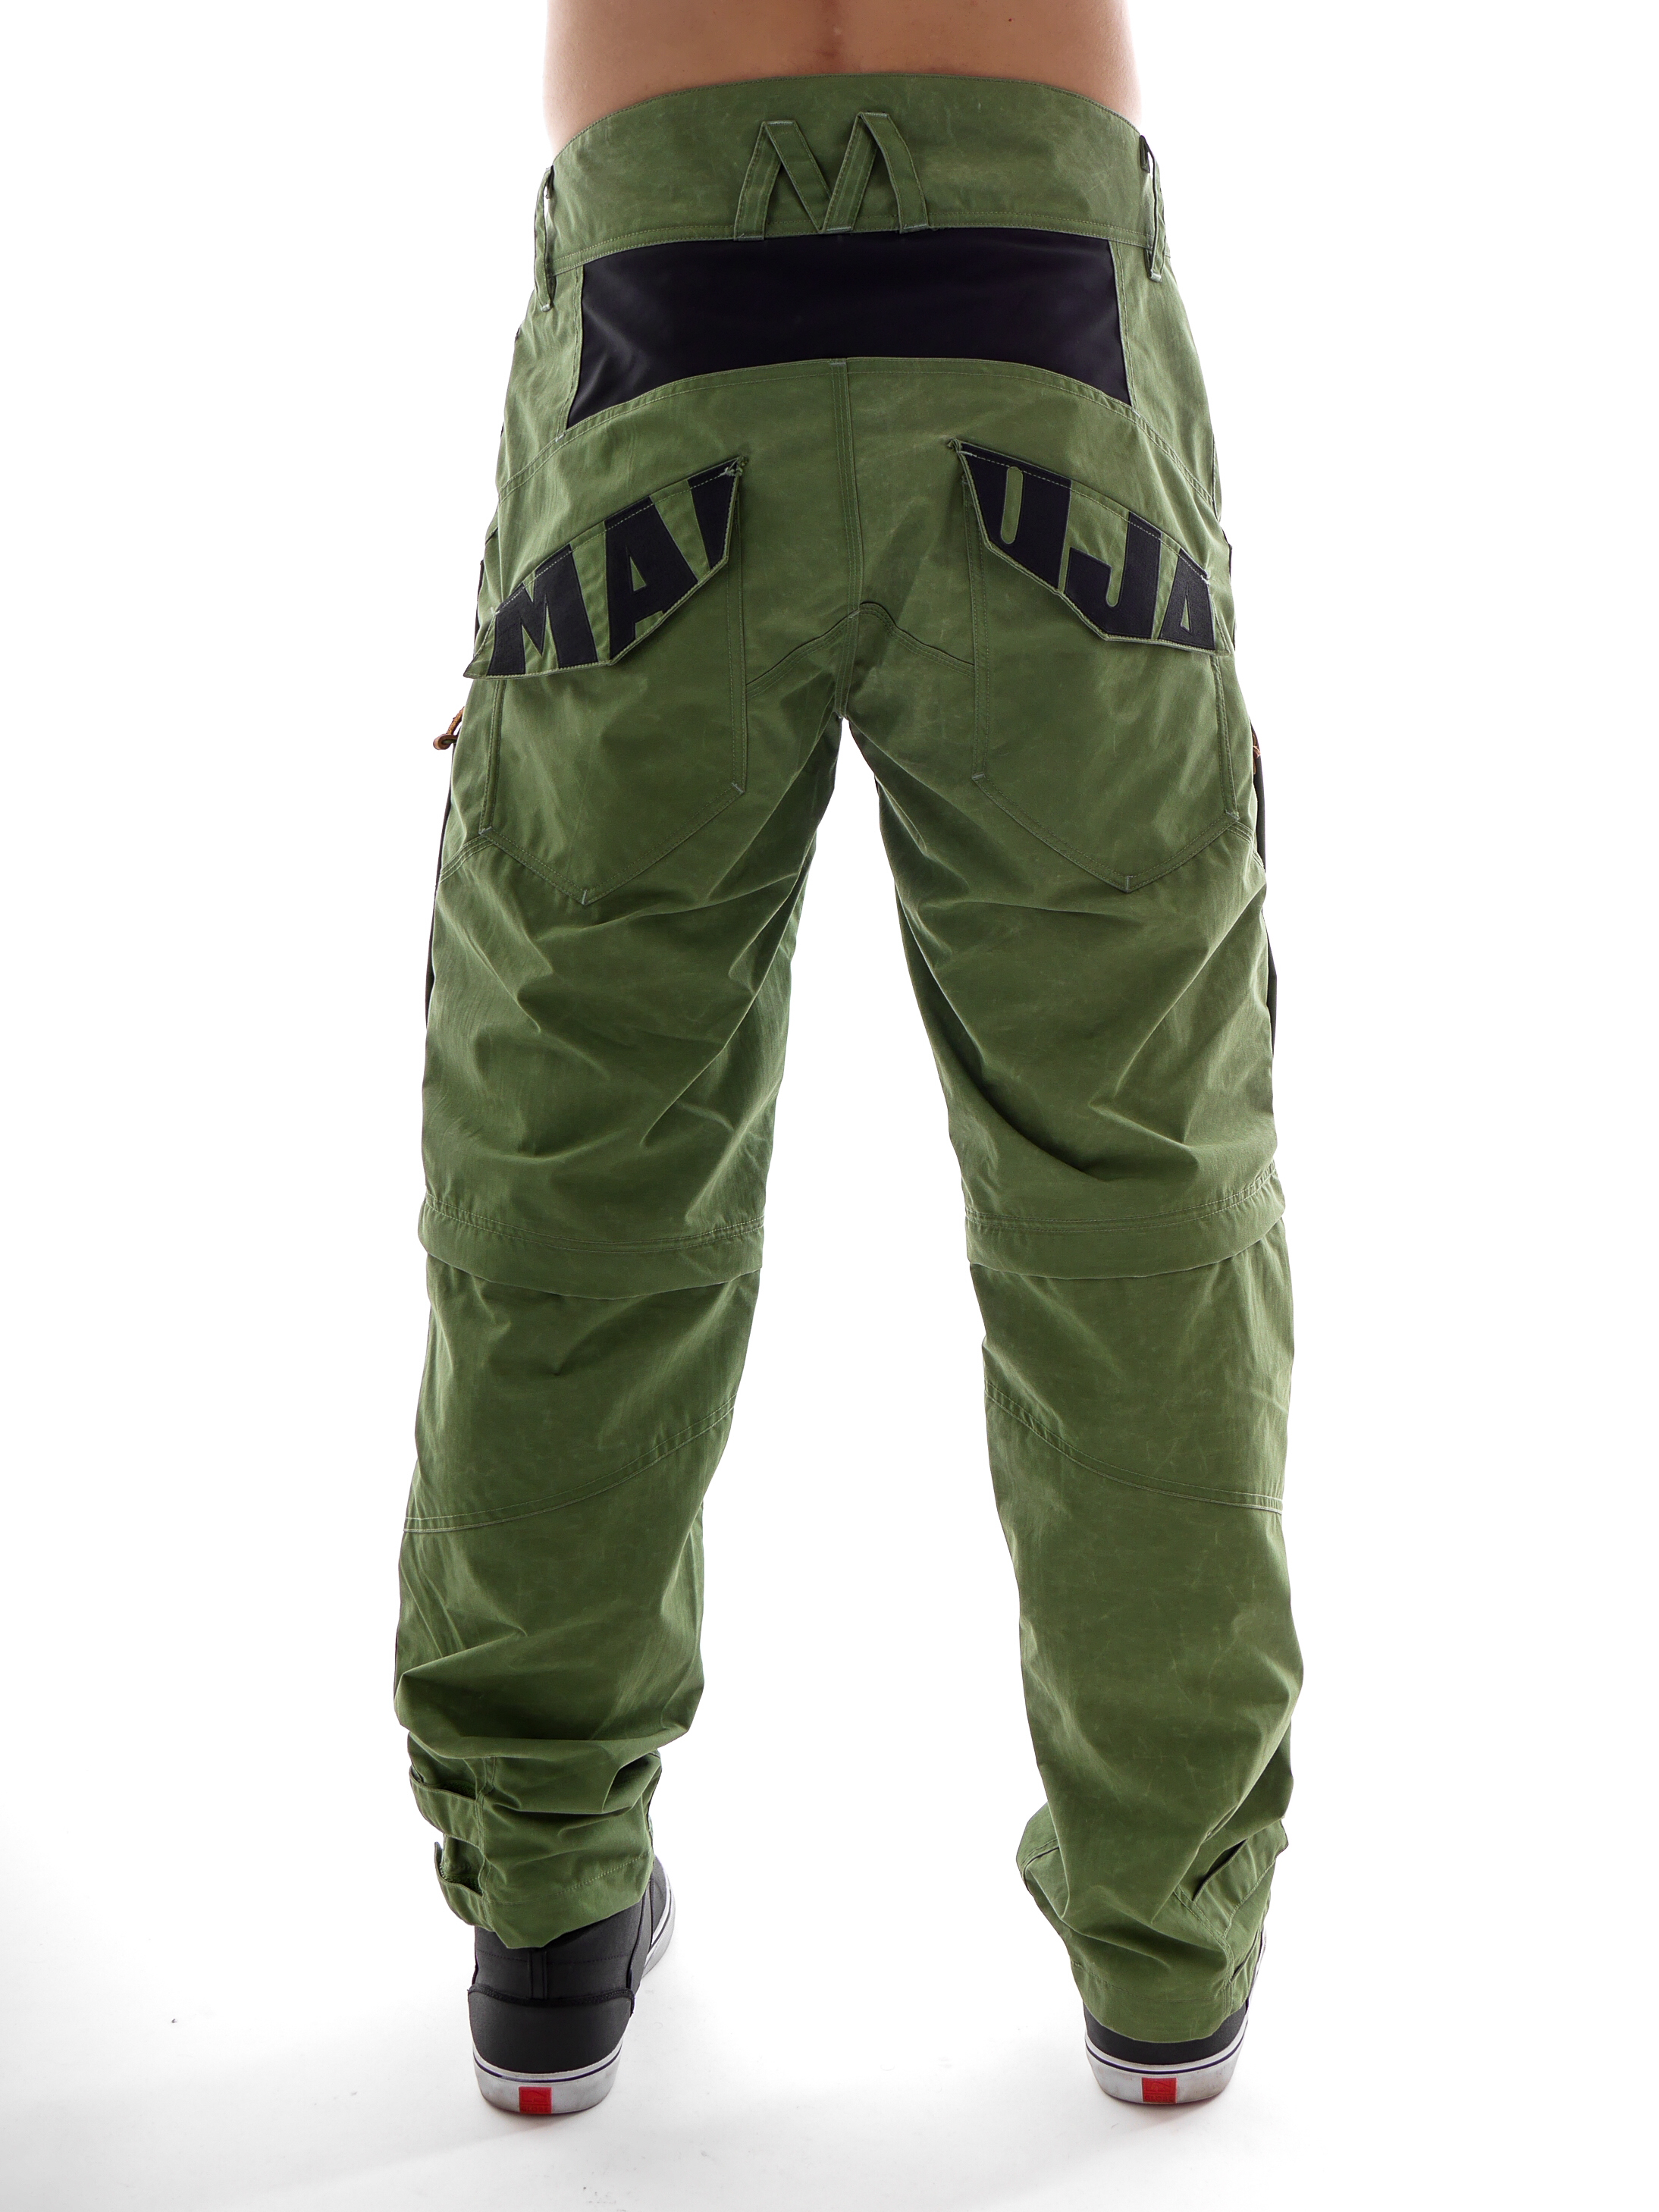 maloja radhose freeride shorts bike pant bilalm gr n 2 in. Black Bedroom Furniture Sets. Home Design Ideas